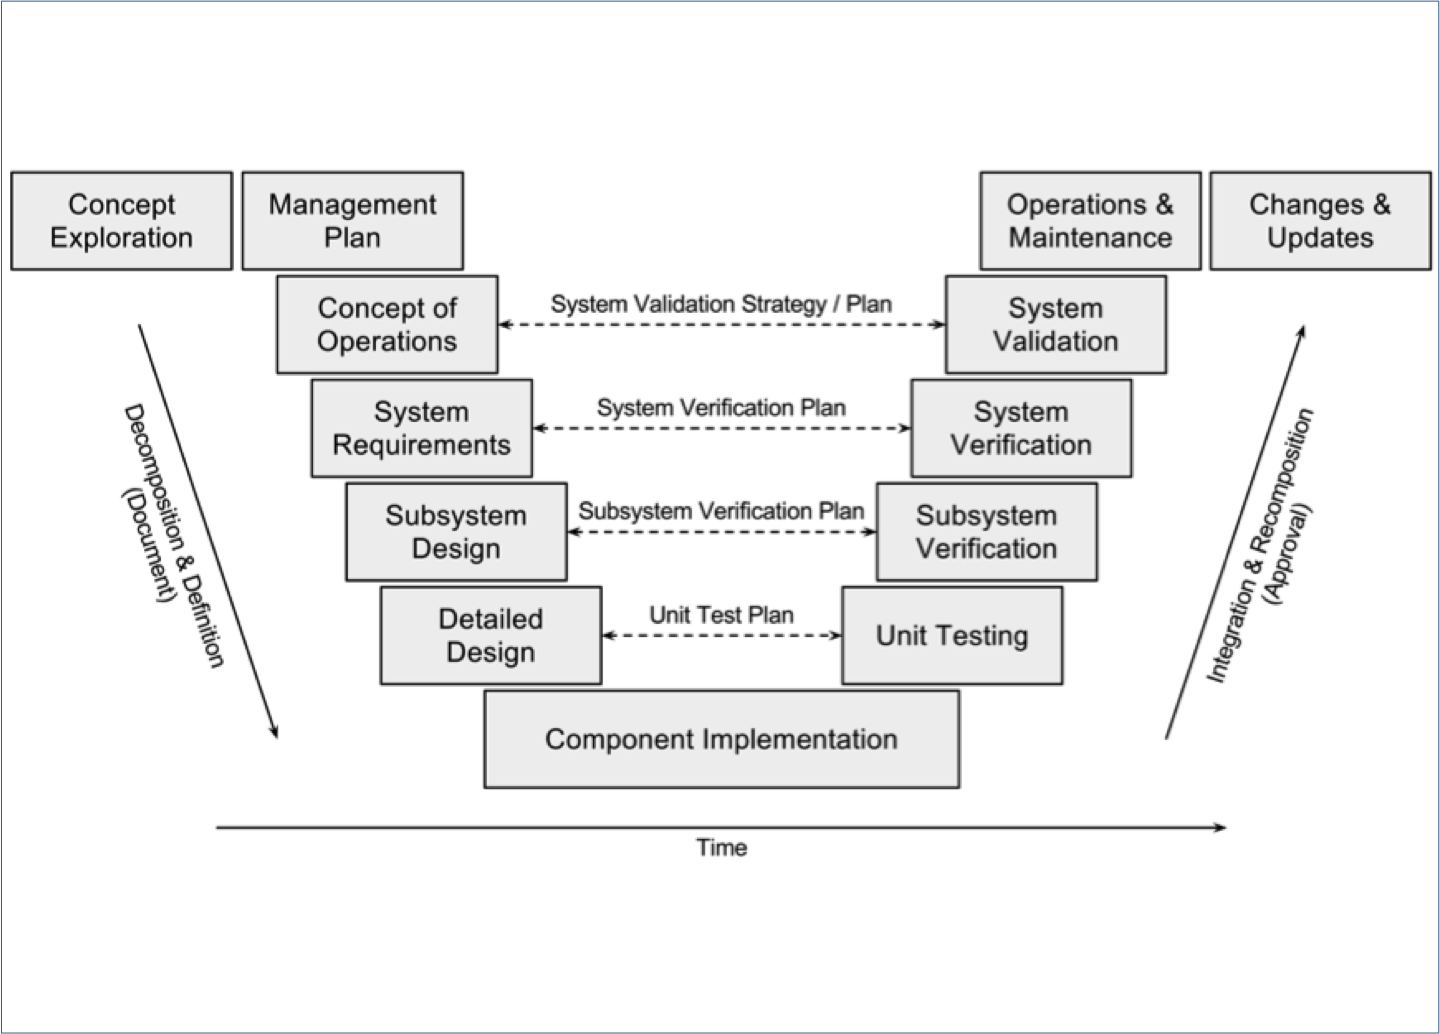 Vee Model for Systems Engineering Process (c)Behnam Esfahbod, by Wikipedia Commons